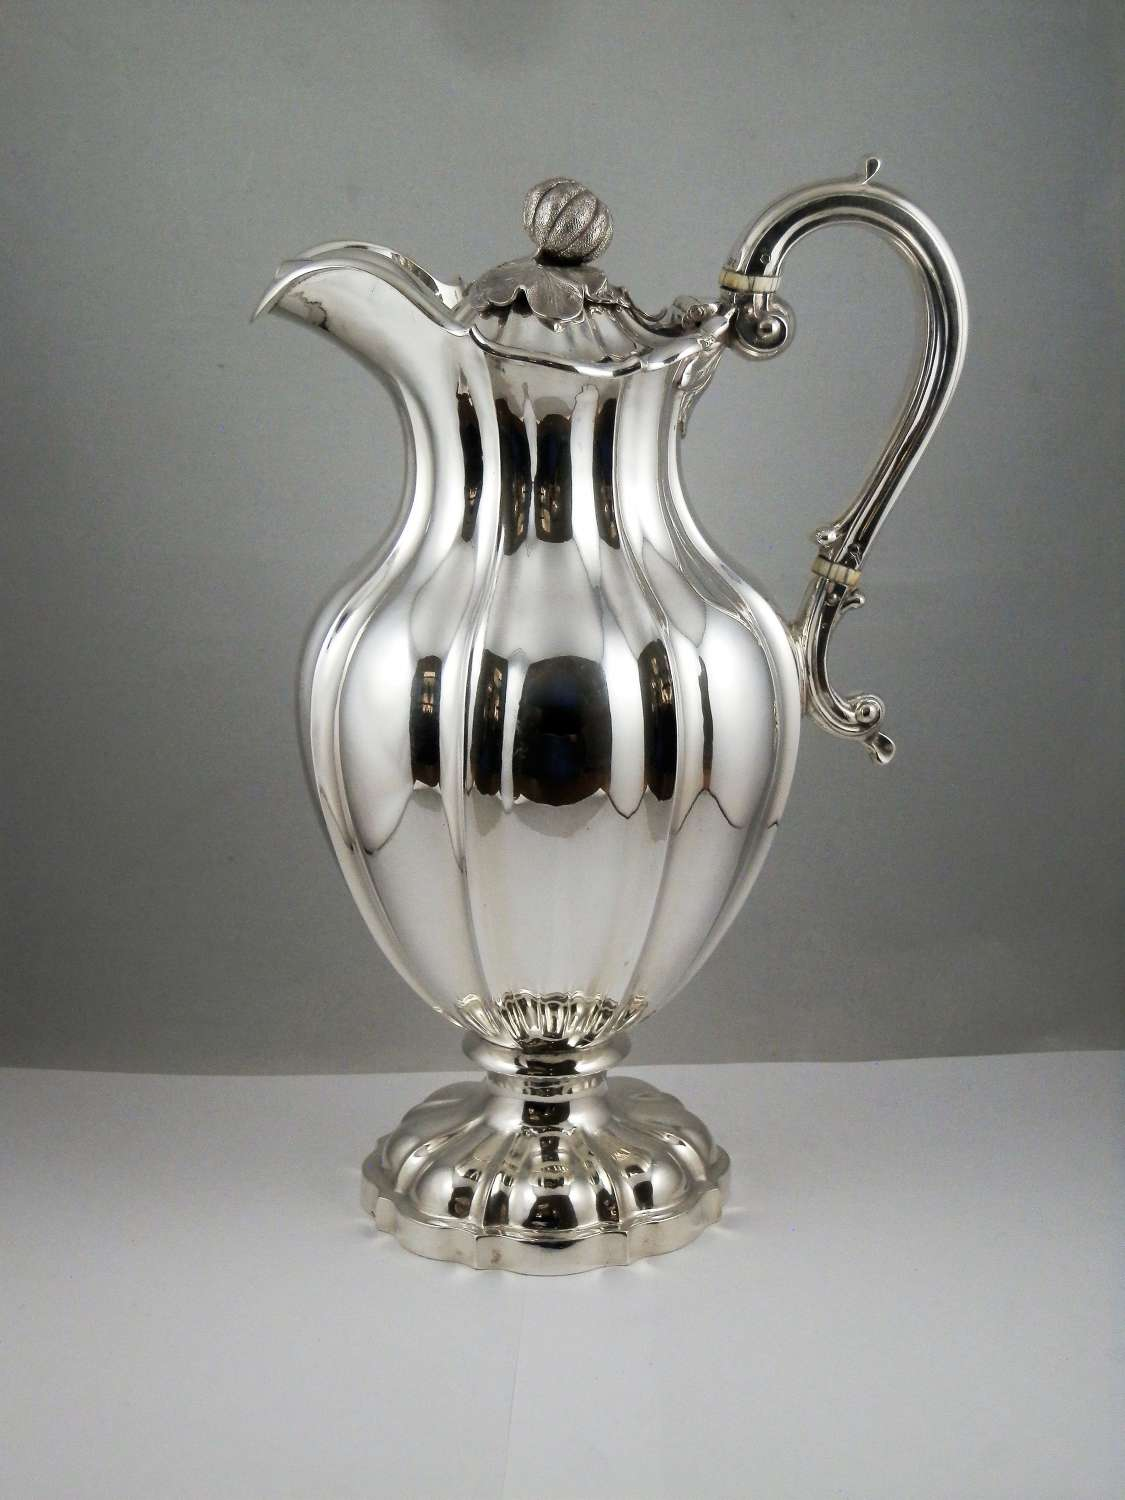 William IV silver wine jug or decanter, 1835